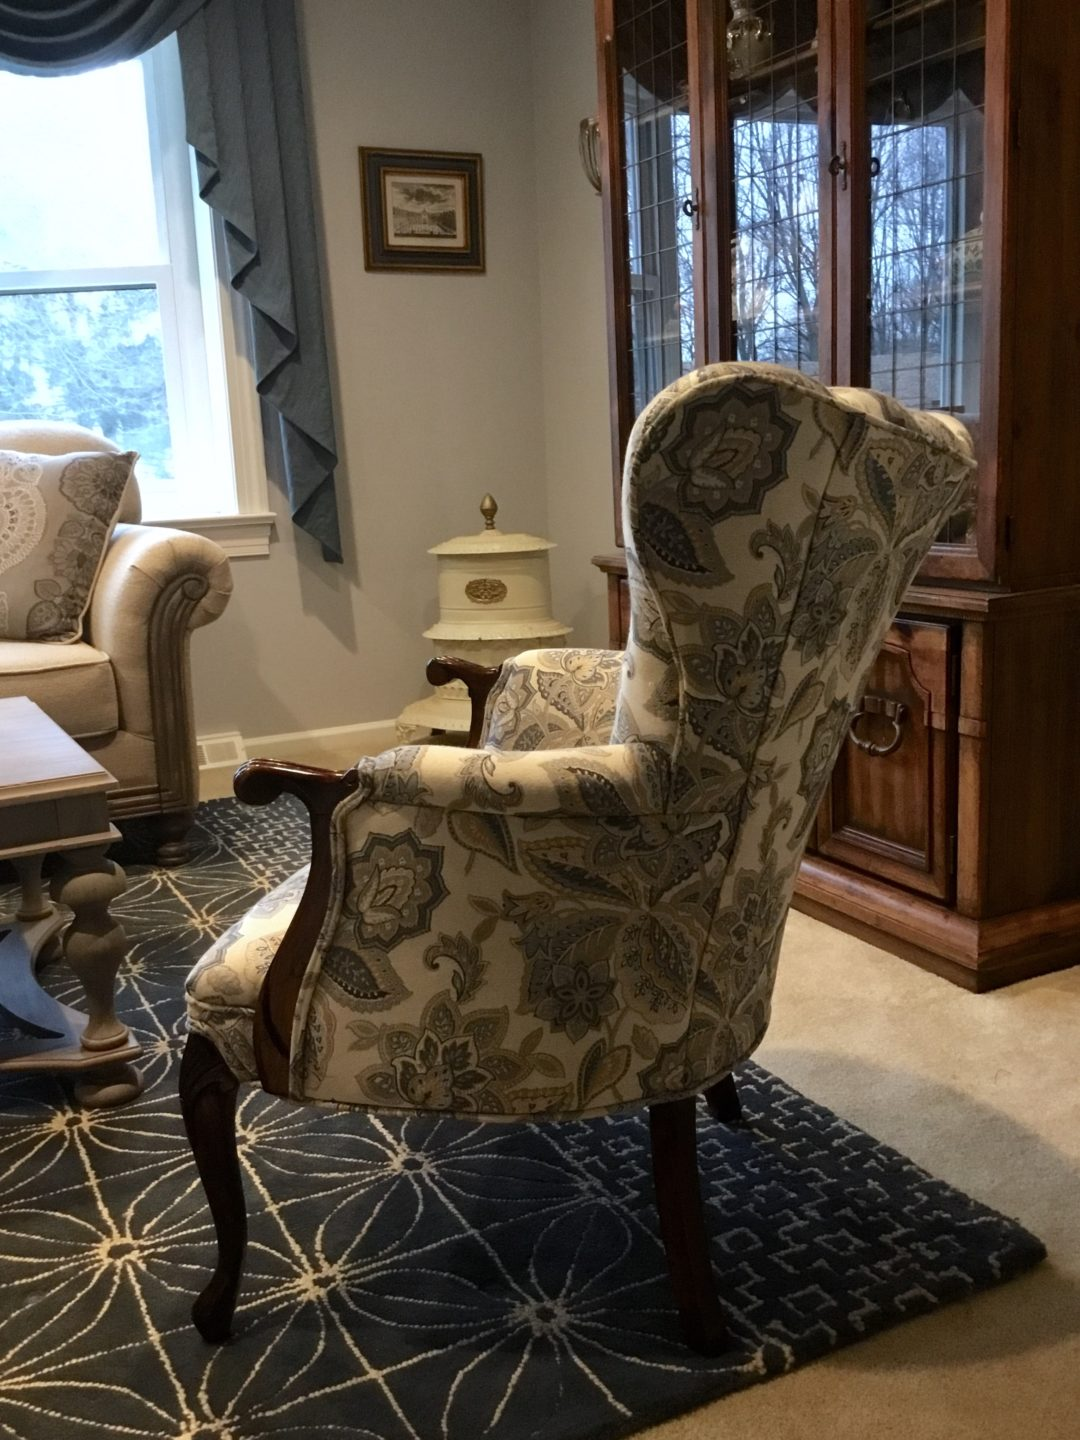 Buttonwood refinished chair - side view